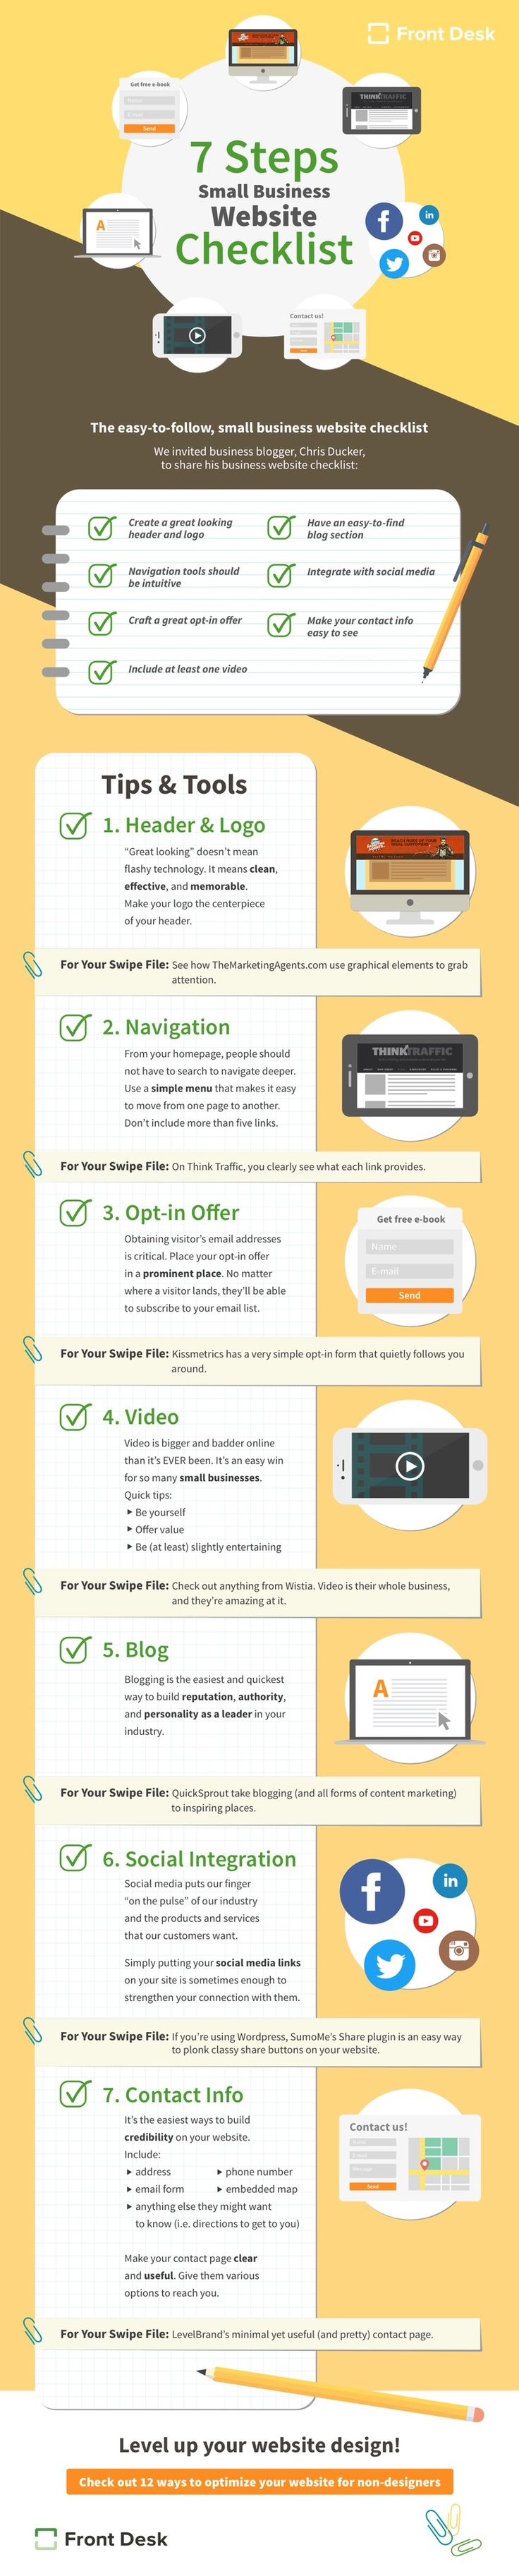 7 Step Checklist to a Successful Small Business Website #Infographic #WebDesign